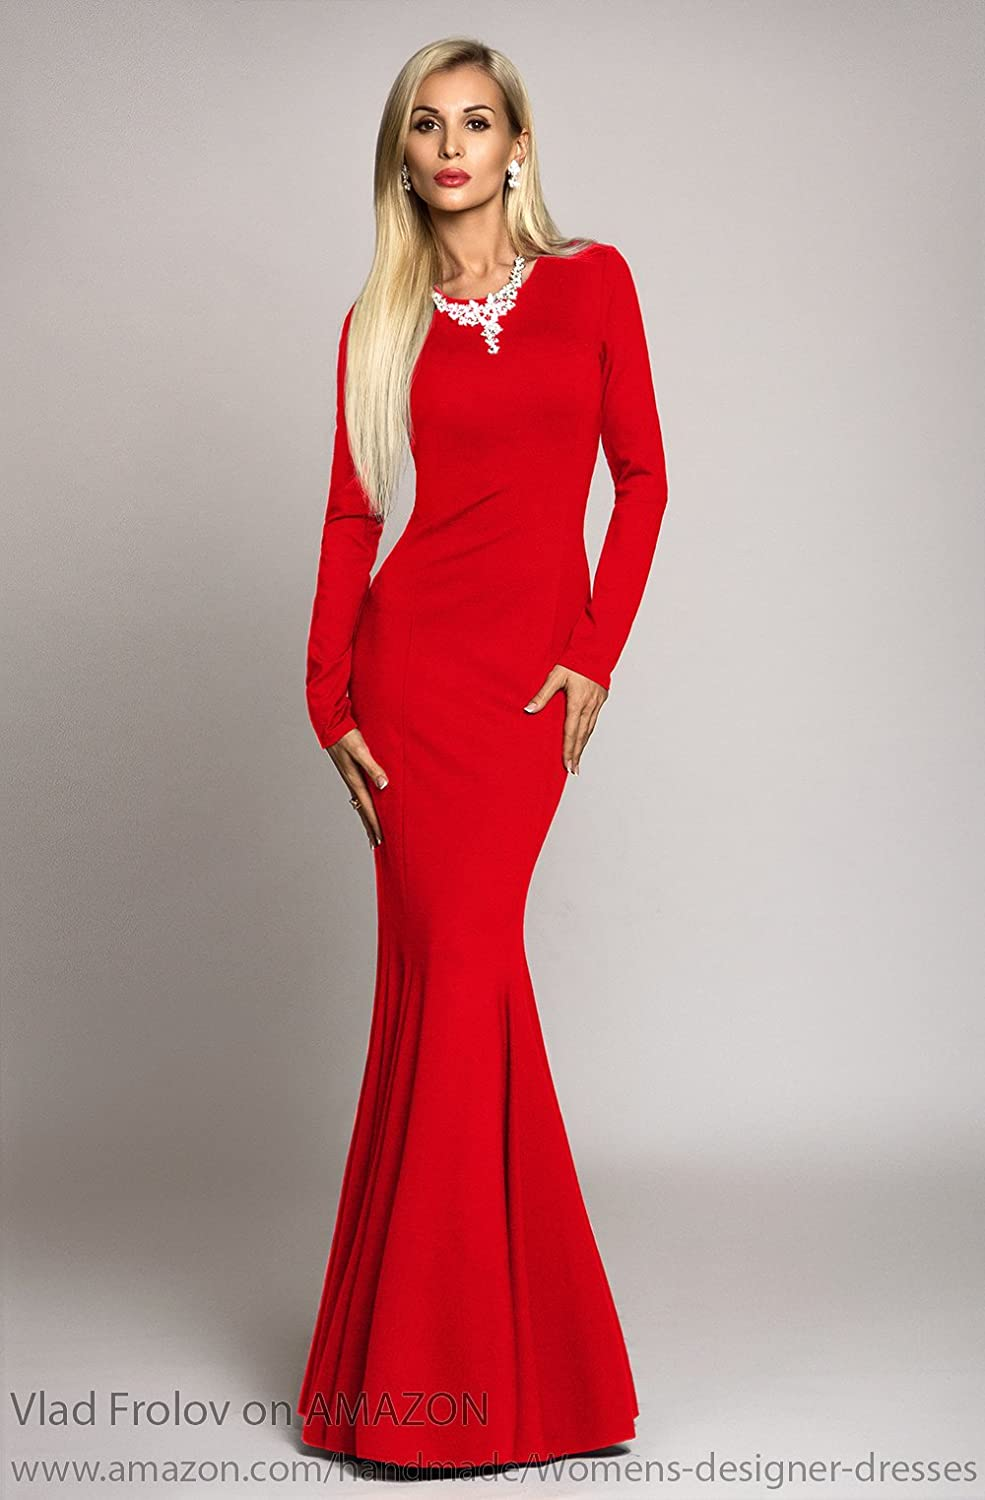 ecbed33a518 Amazon.com  Long red dress in mermaid style